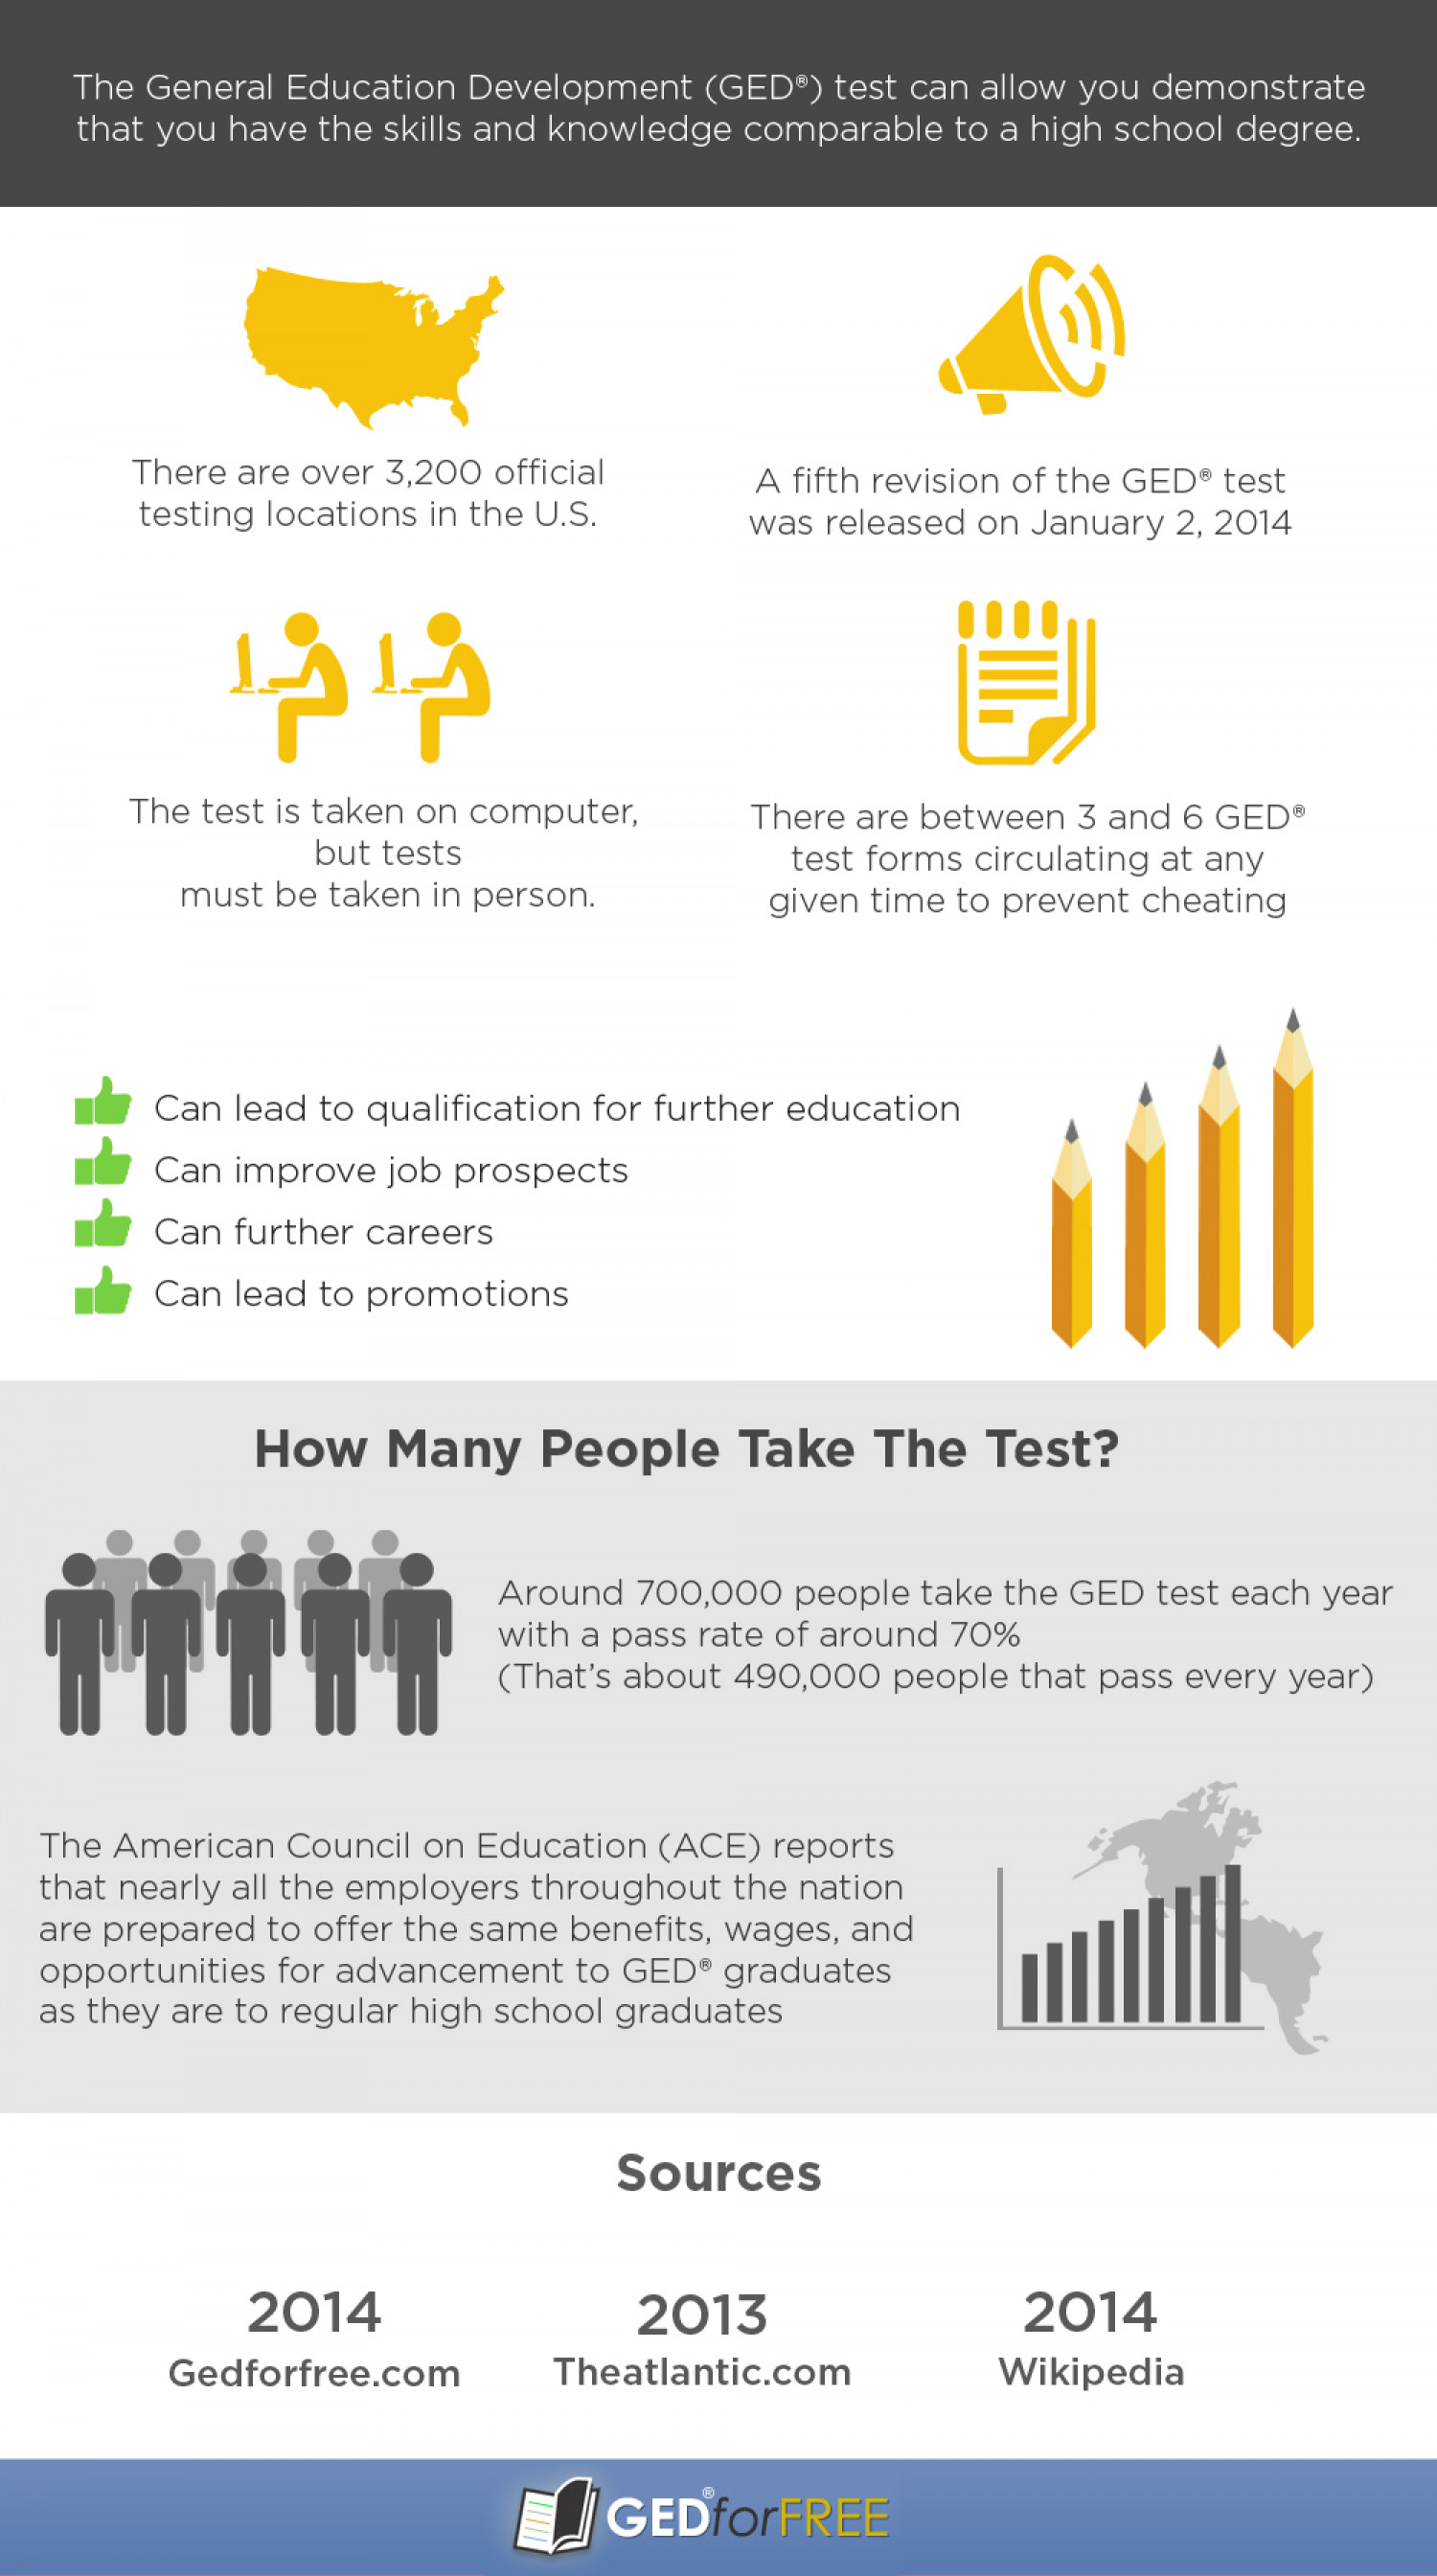 How Many People Take The GED Test Online? Infographic